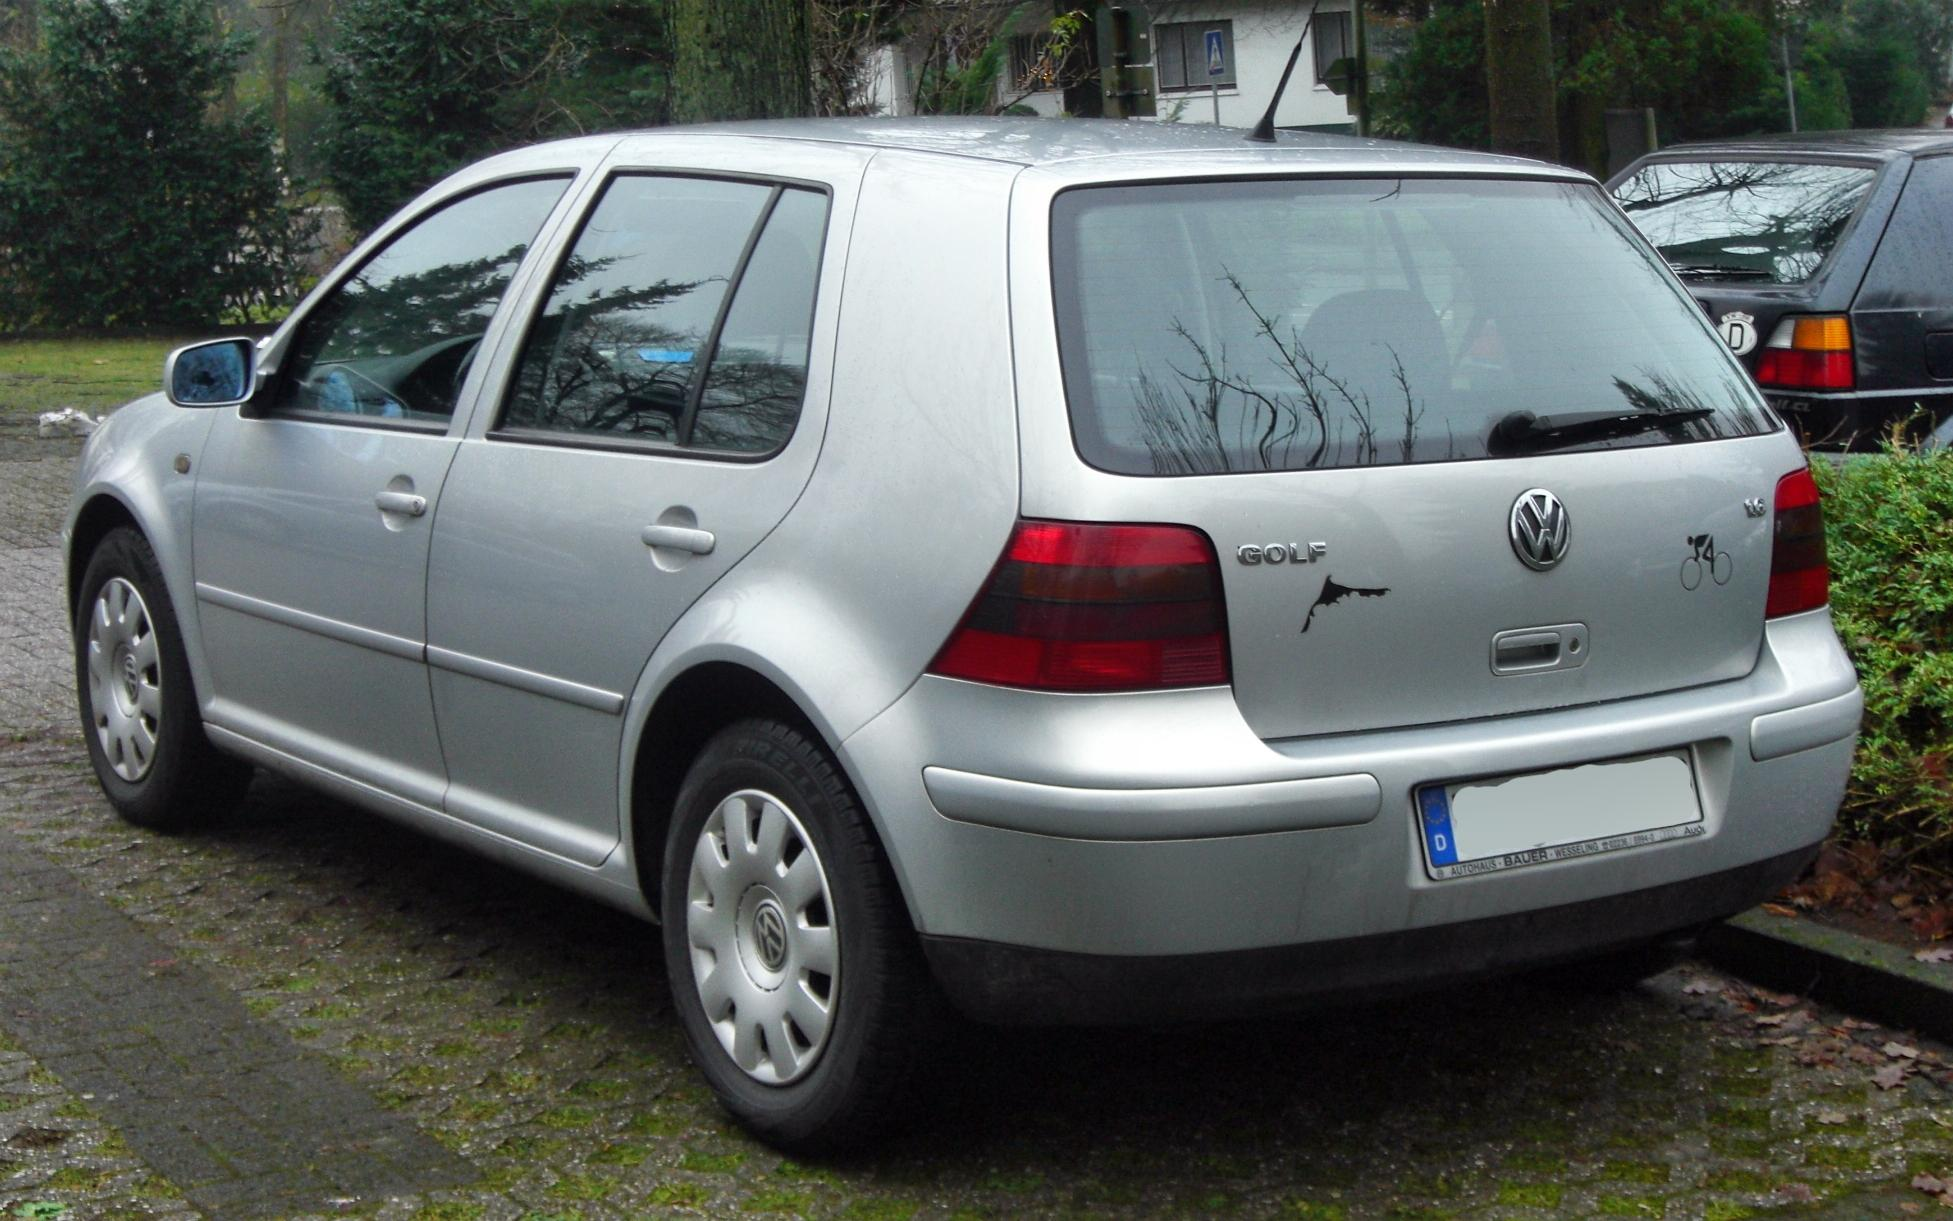 Datoteka vw golf iv 1 6 1997 2003 rear mj jpg wikipedia - Entraxe golf 4 ...